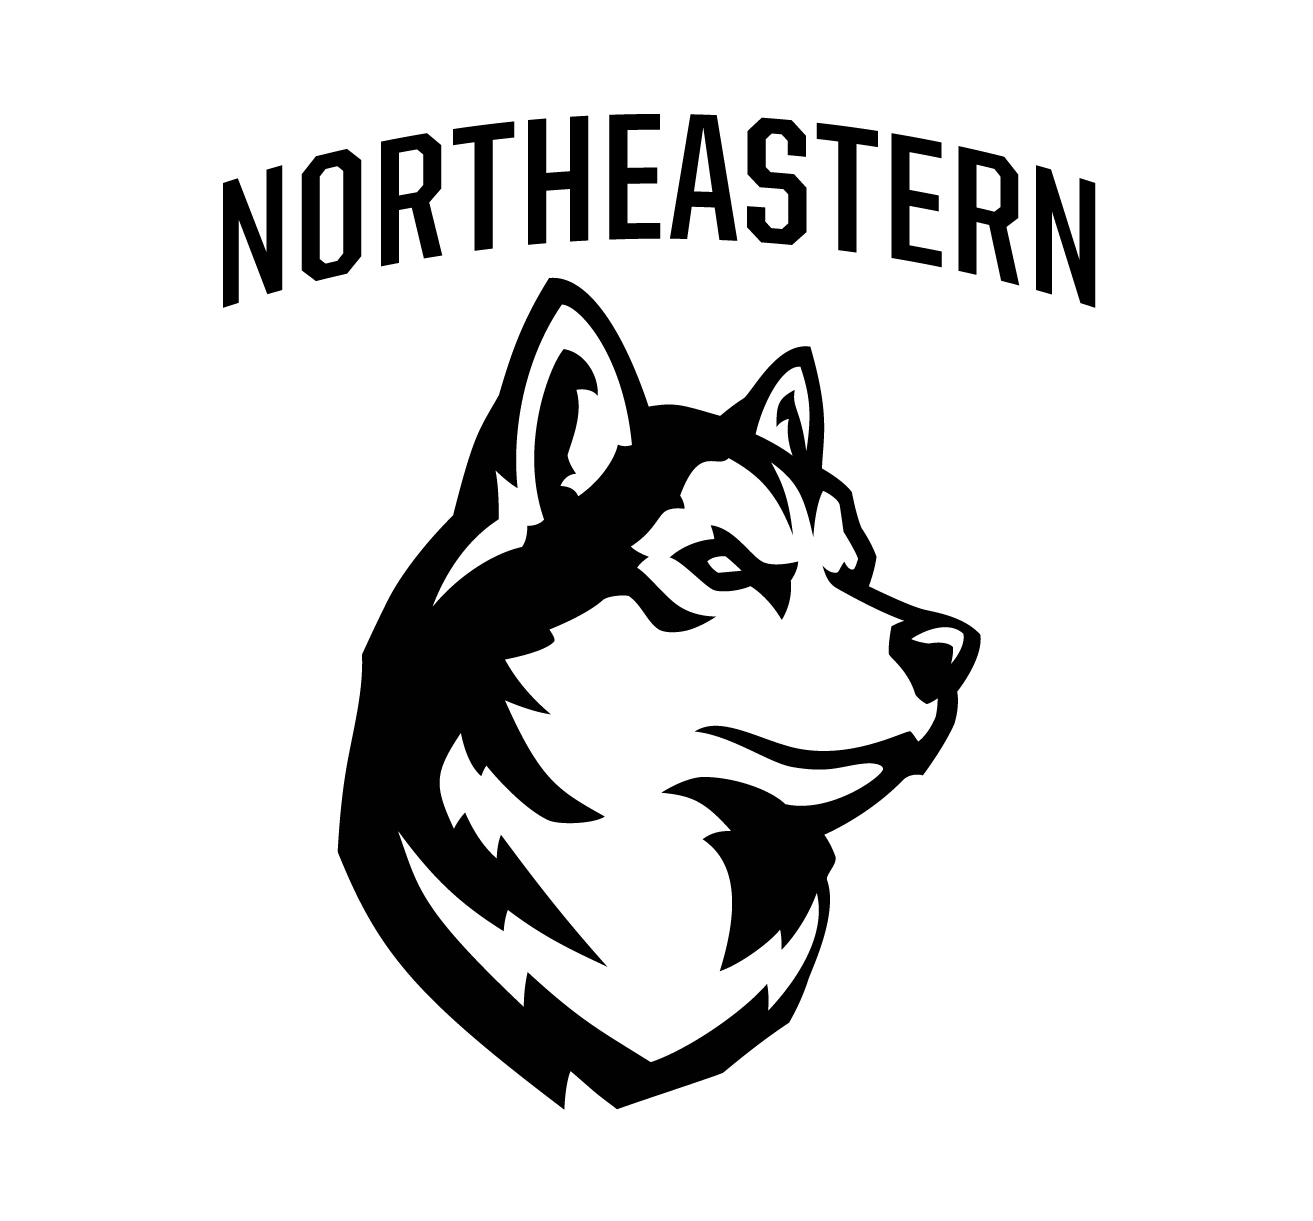 Middle Distance Freestyler Grace Miller Commits to Northeastern for 2020